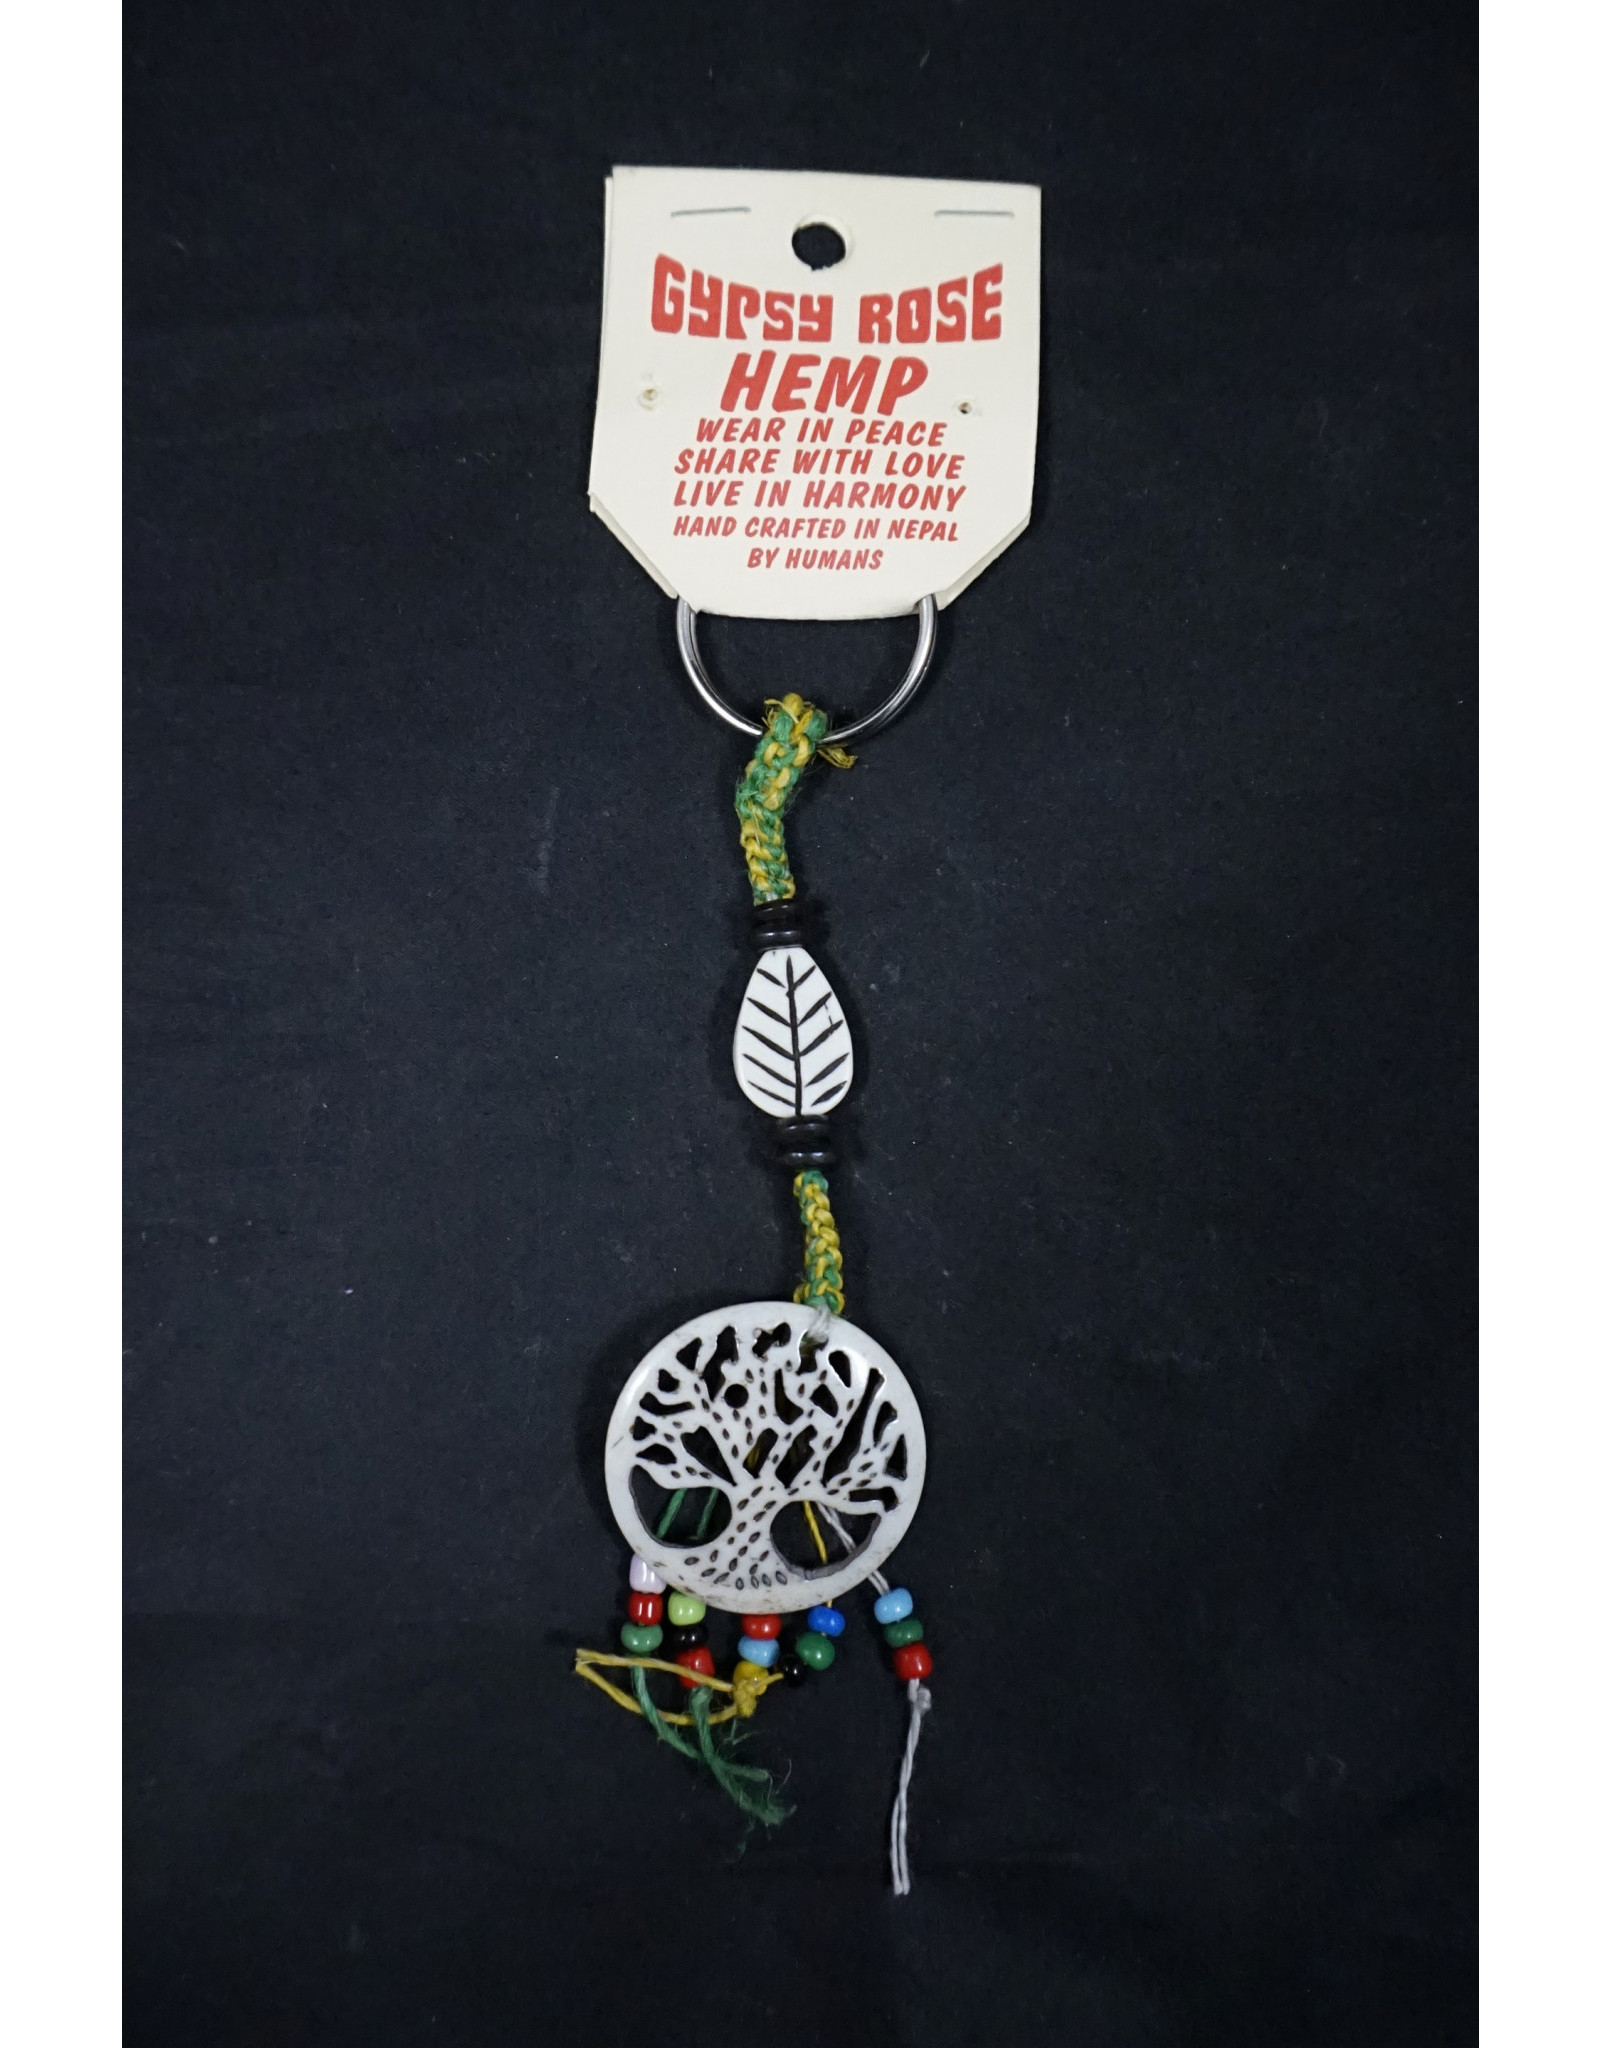 Lifes Force Tree Hemp and Bone Keychain                                                                                                                                                                                                      Keychain